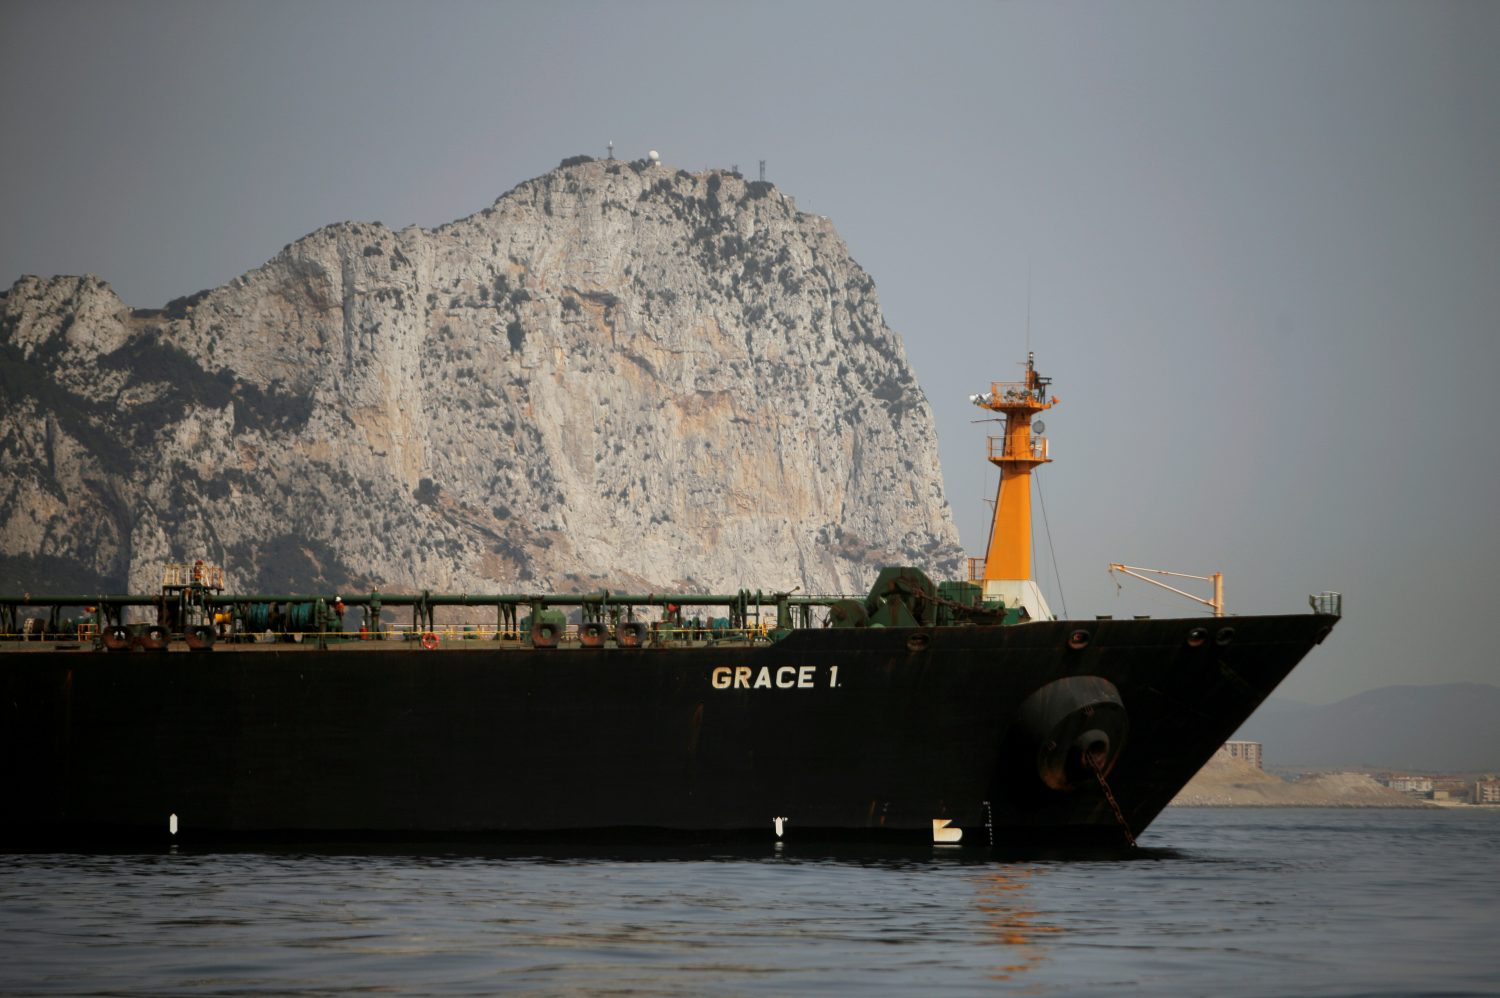 FILE PHOTO: Iranian oil tanker Grace 1 sits anchored after it was seized earlier this month by British Royal Marines off the coast of the British Mediterranean territory on suspicion of violating sanctions against Syria, in the Strait of Gibraltar, southern Spain July 20, 2019. REUTERS/Jon Nazca/File Photo